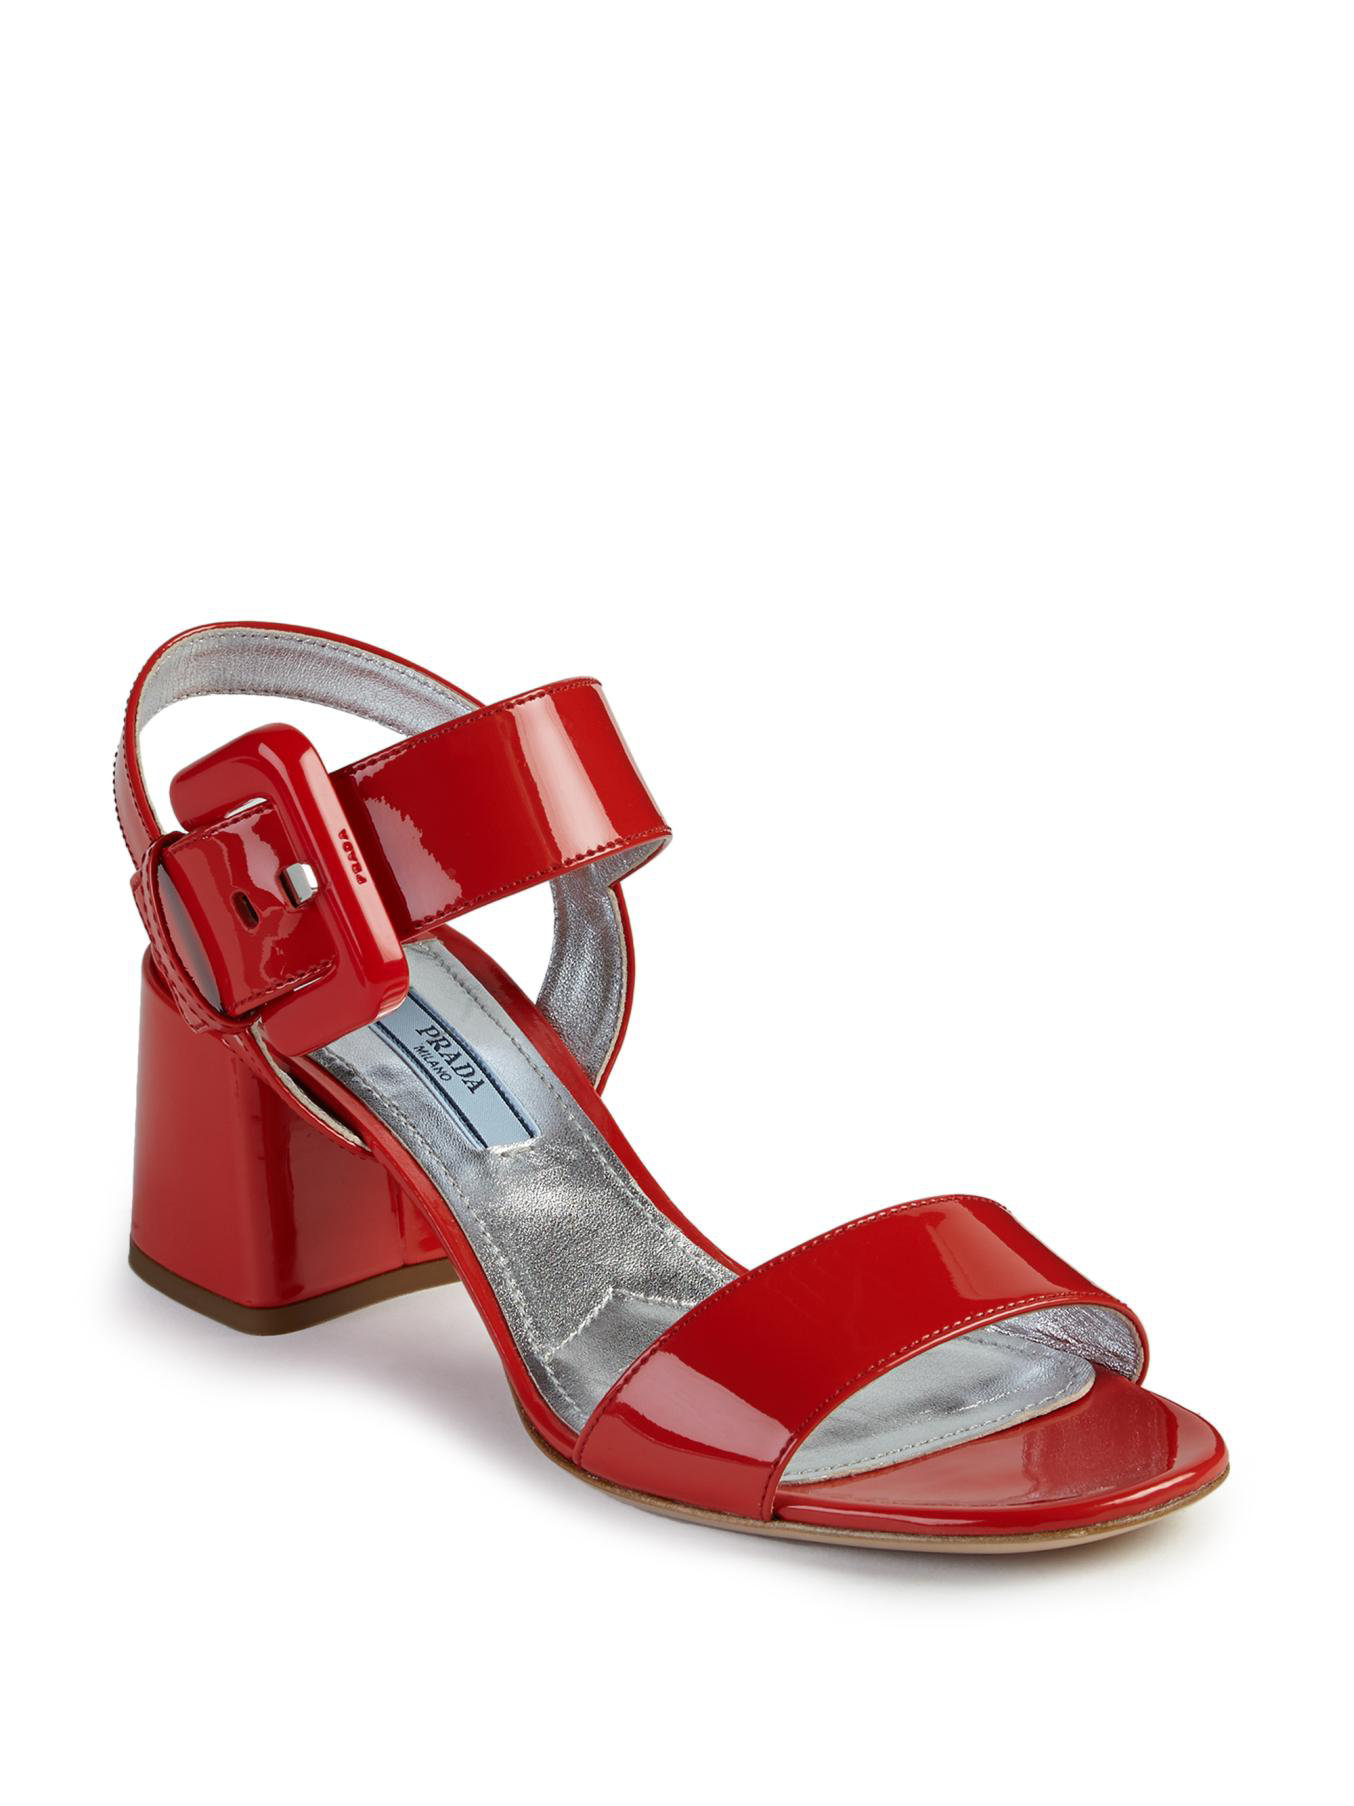 lyst prada patent leather midheel sandals in red